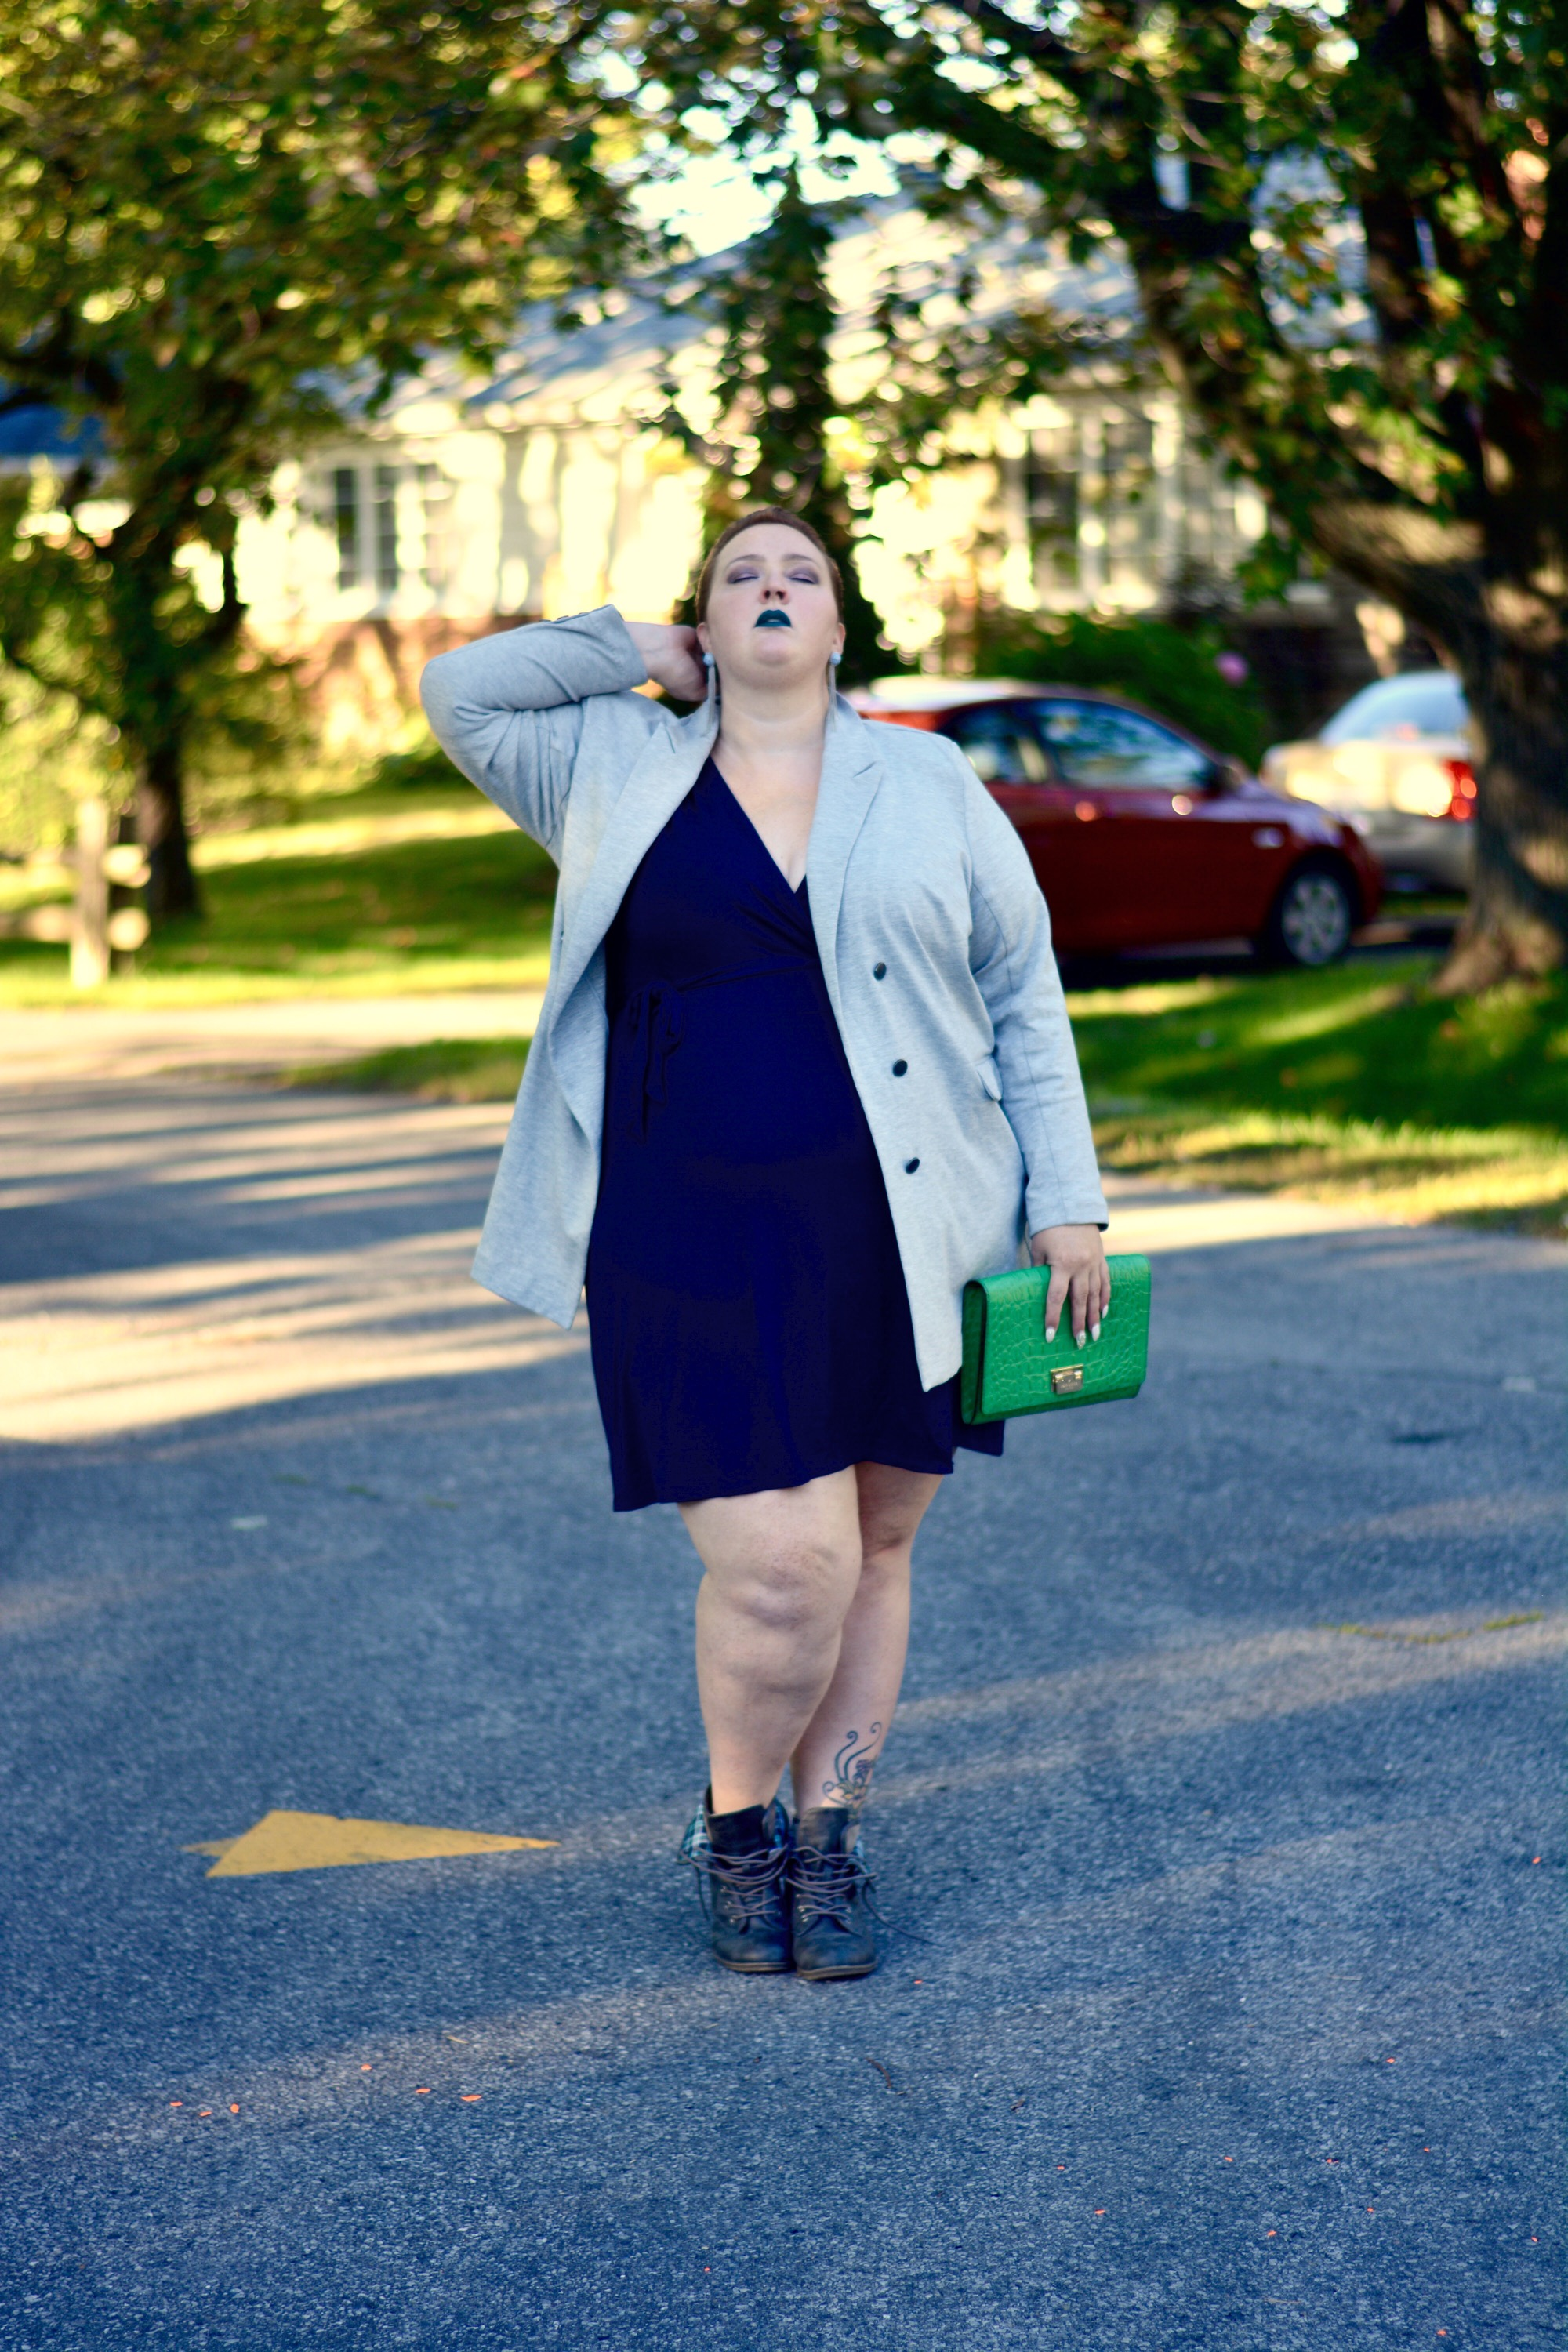 single bbw women in braddock heights Meet single bbw women in allegheny county is your life ready to meet a big beautiful single woman to tie the nuptial knot with everyone on zoosk is.